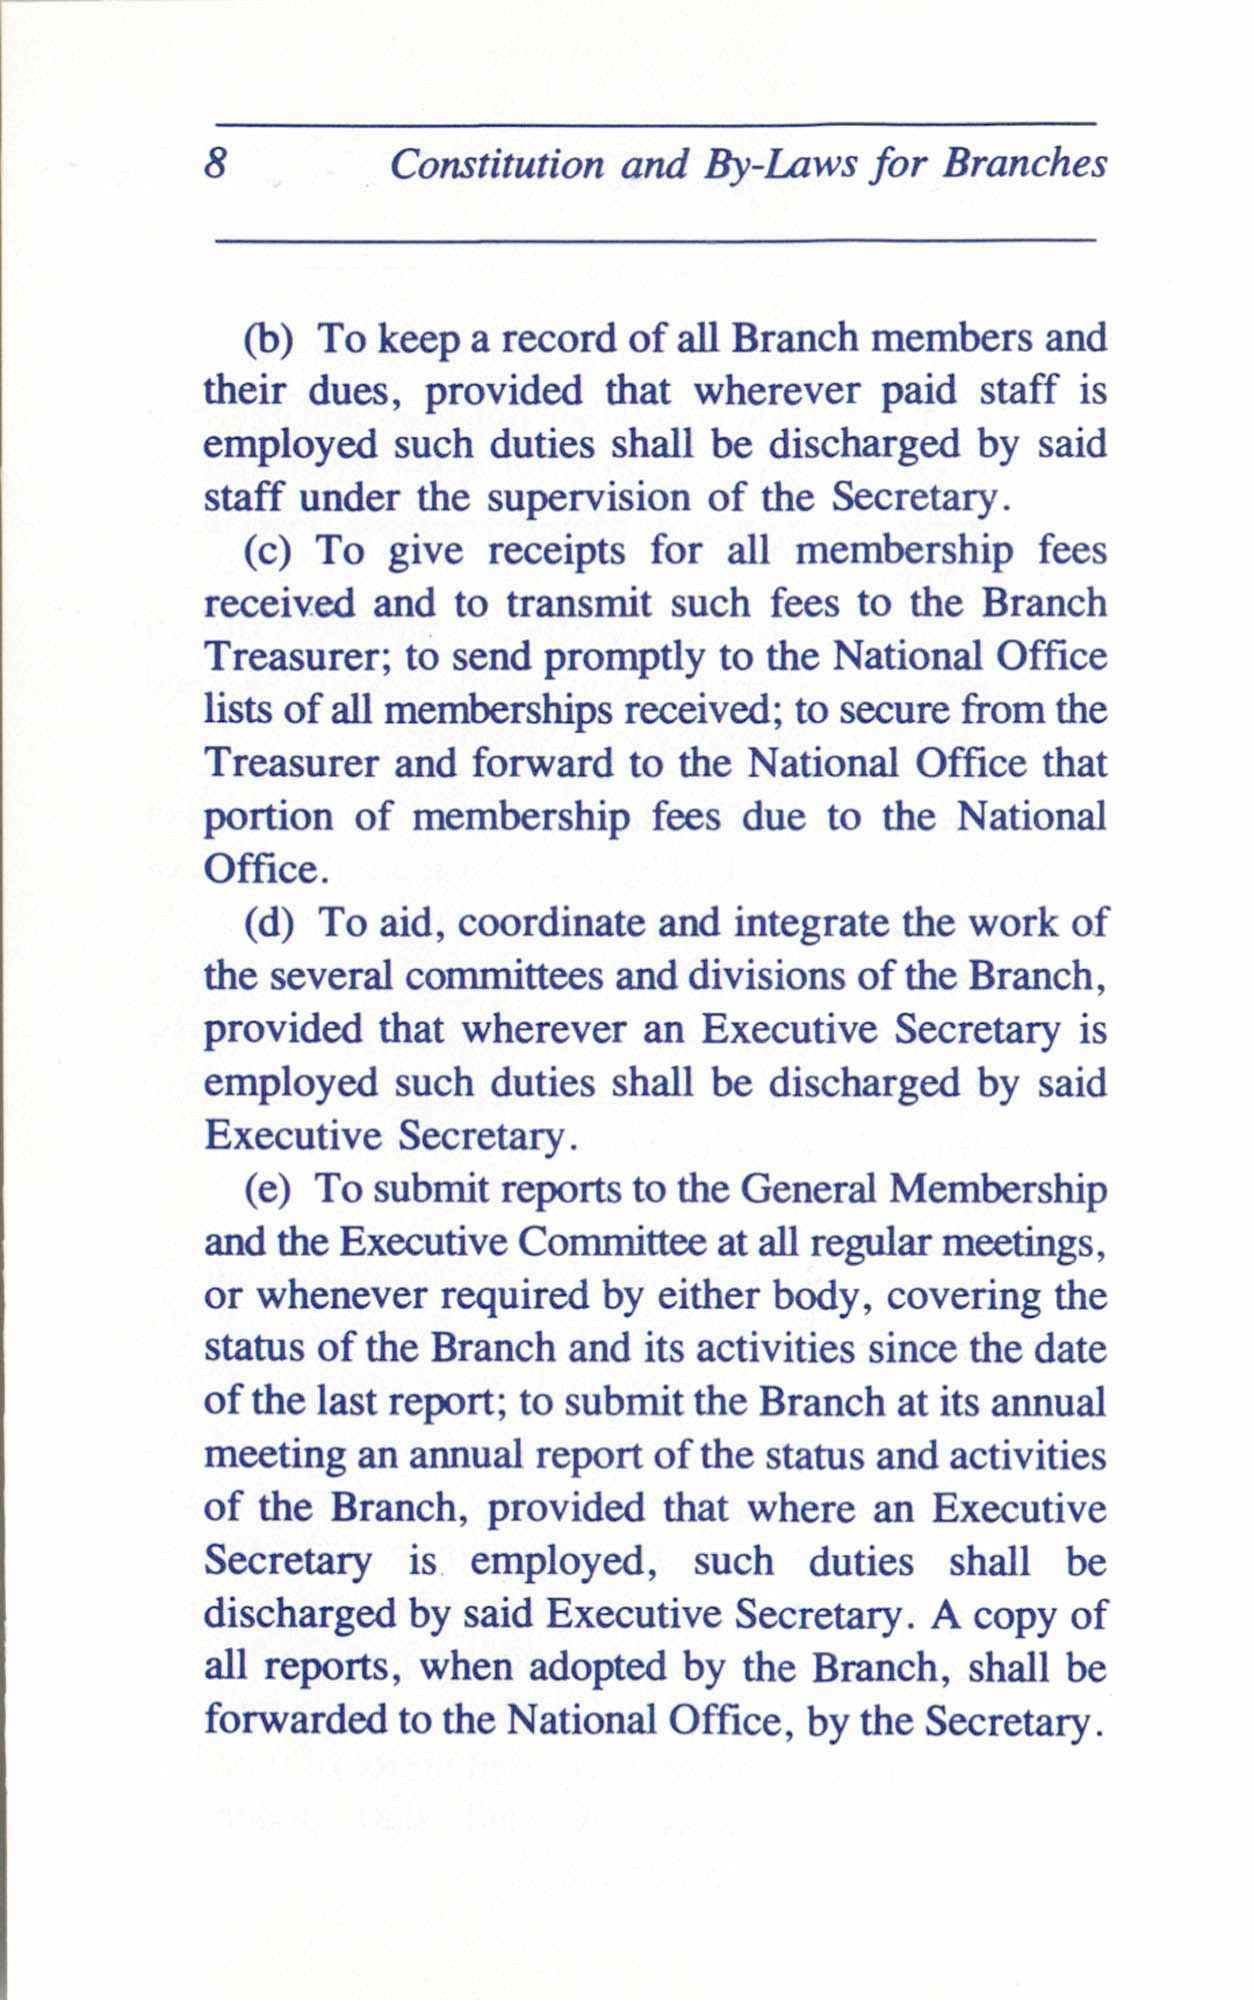 Constitution and By-Laws for Branches of the NAACP, June 1993, Page 8